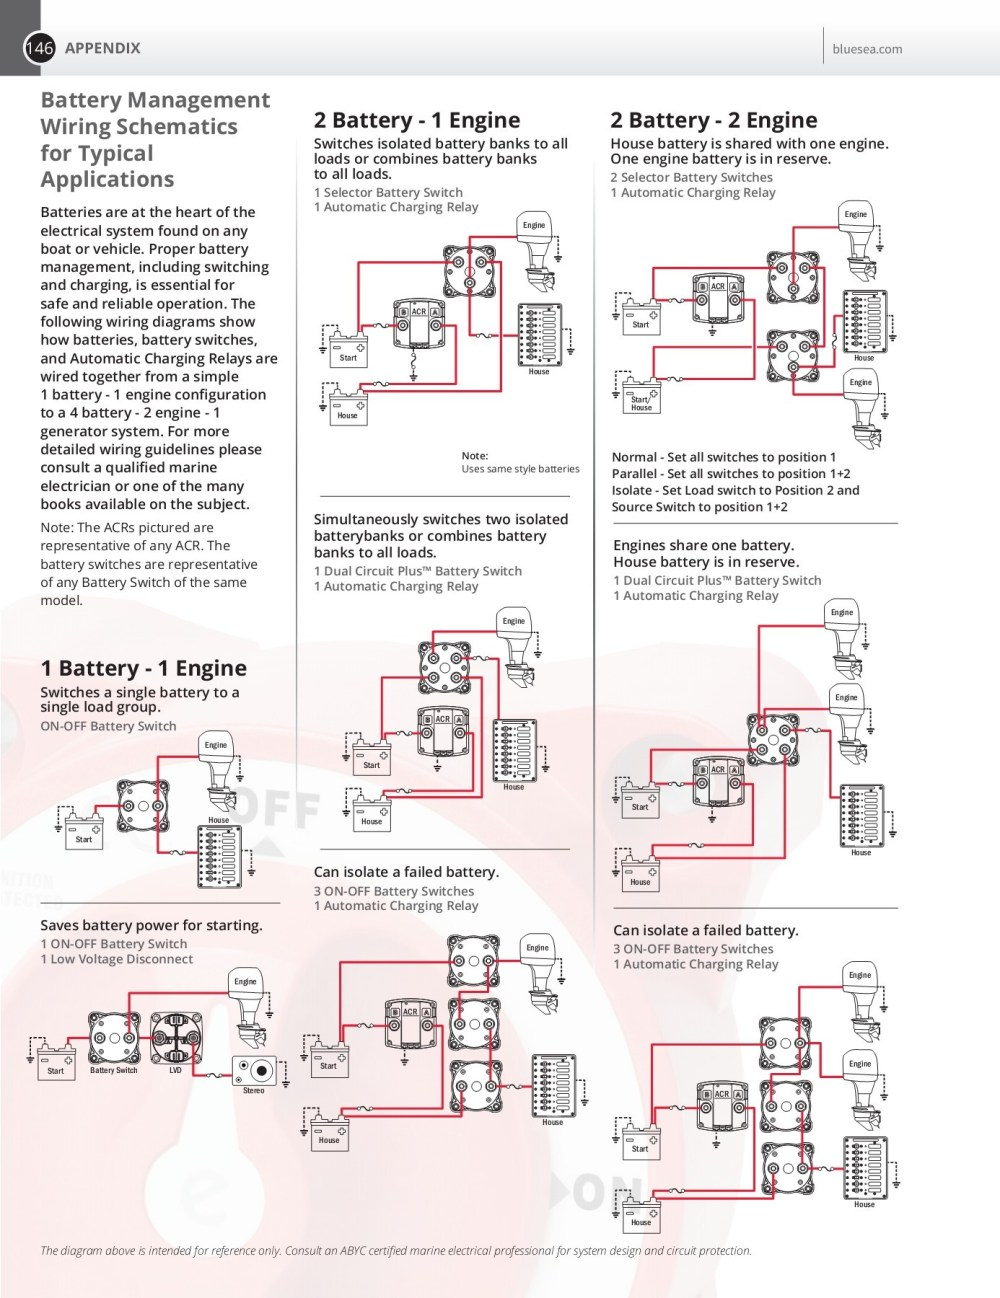 medium resolution of blue sea 9009 switch wiring diagram systems schematic diagrams 3 position selector switch diagram blue sea battery selector switch wiring diagram